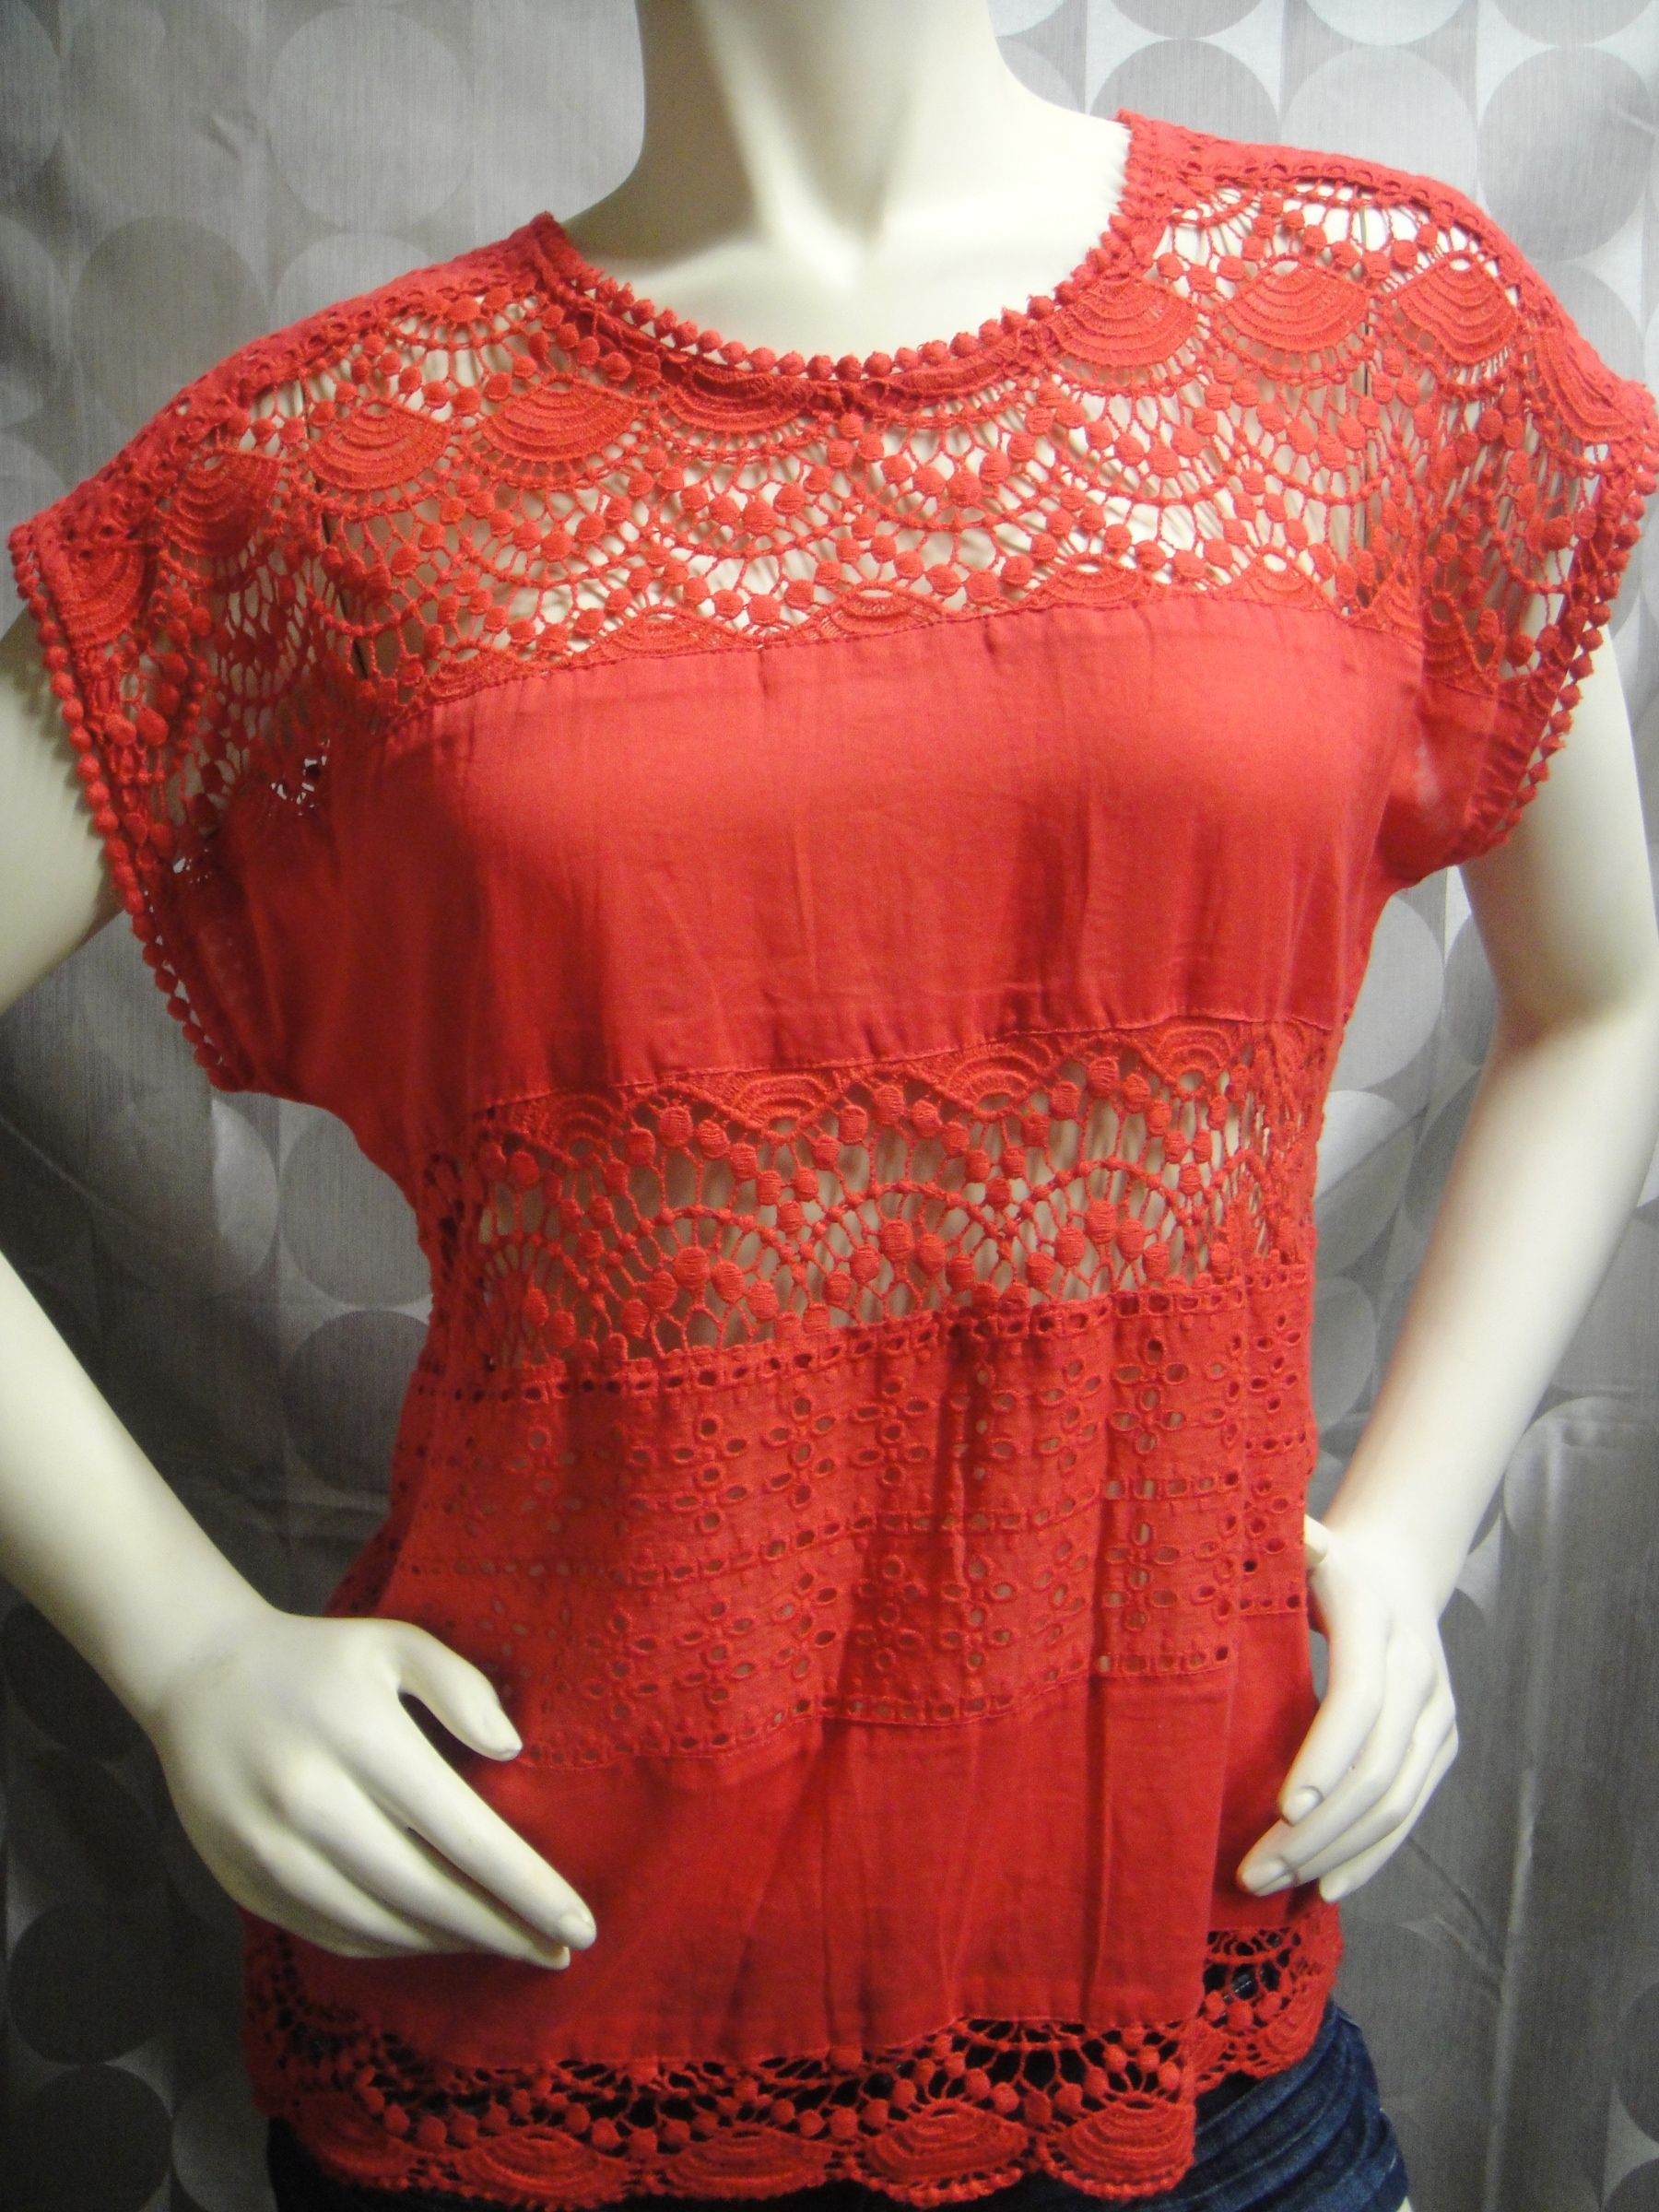 Adorable and lightweight makes it perfect for summer!  Strawberry red in color with cutouts.  Size Medium